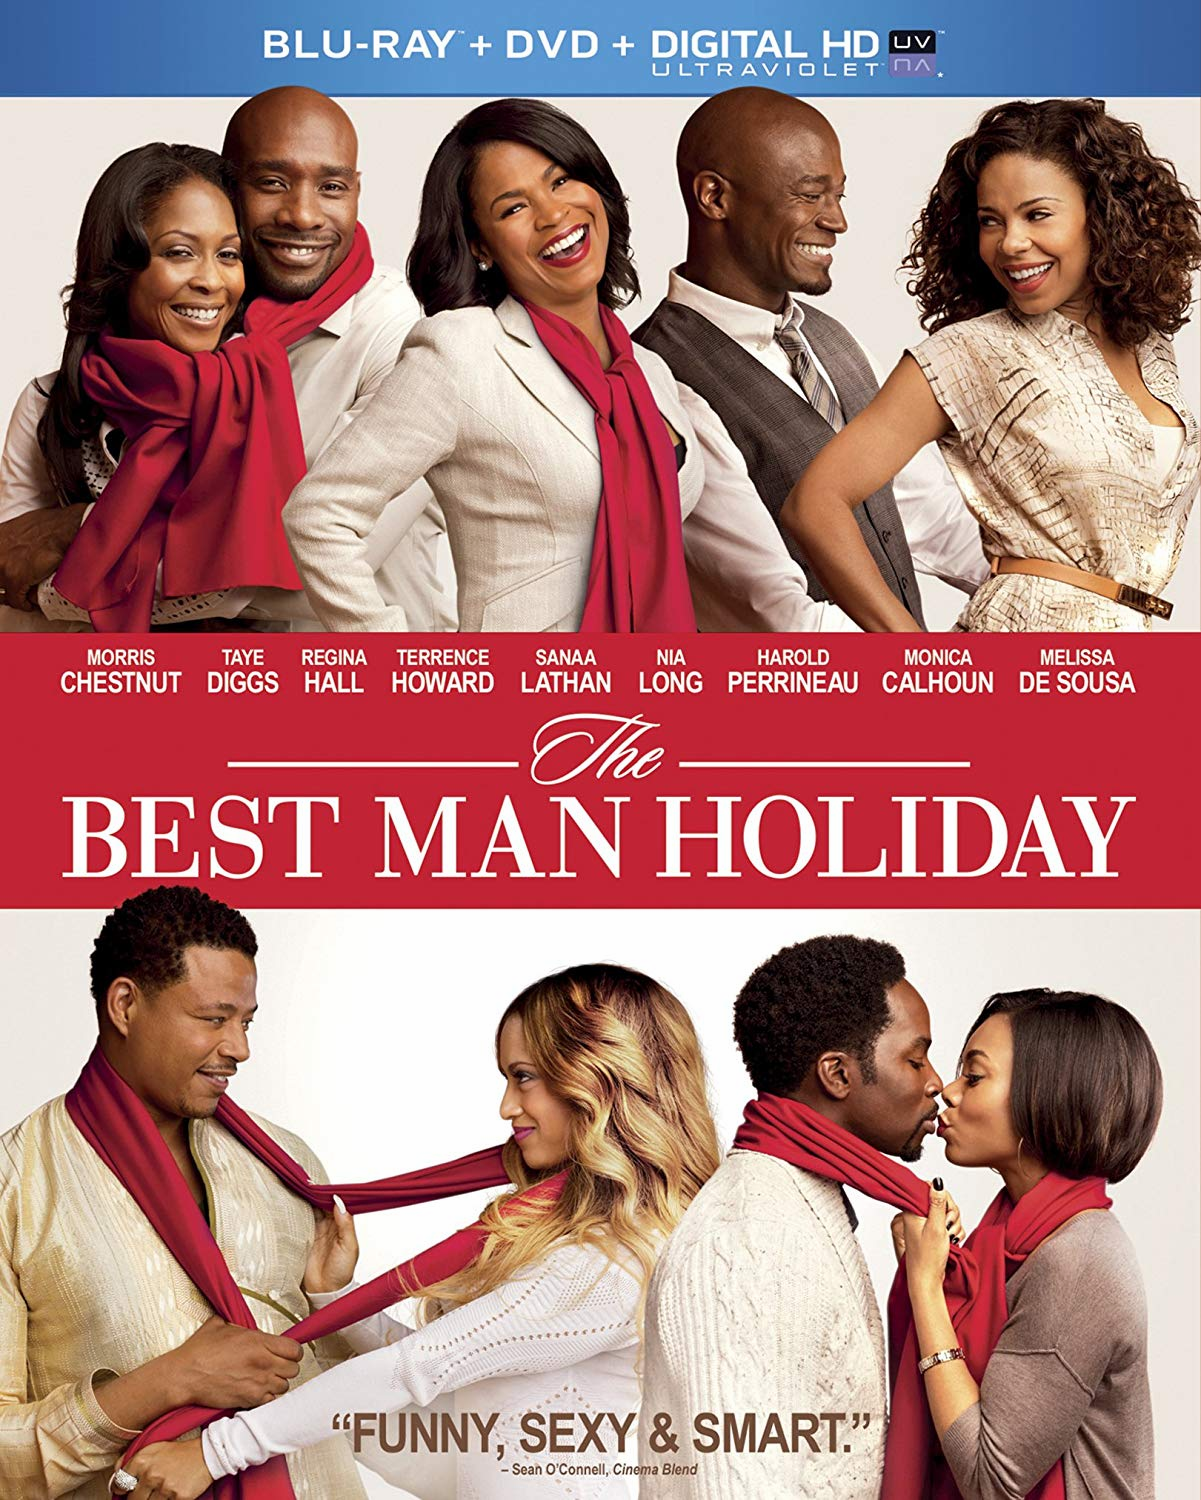 The Best Man Holiday Blu-ray (USED)